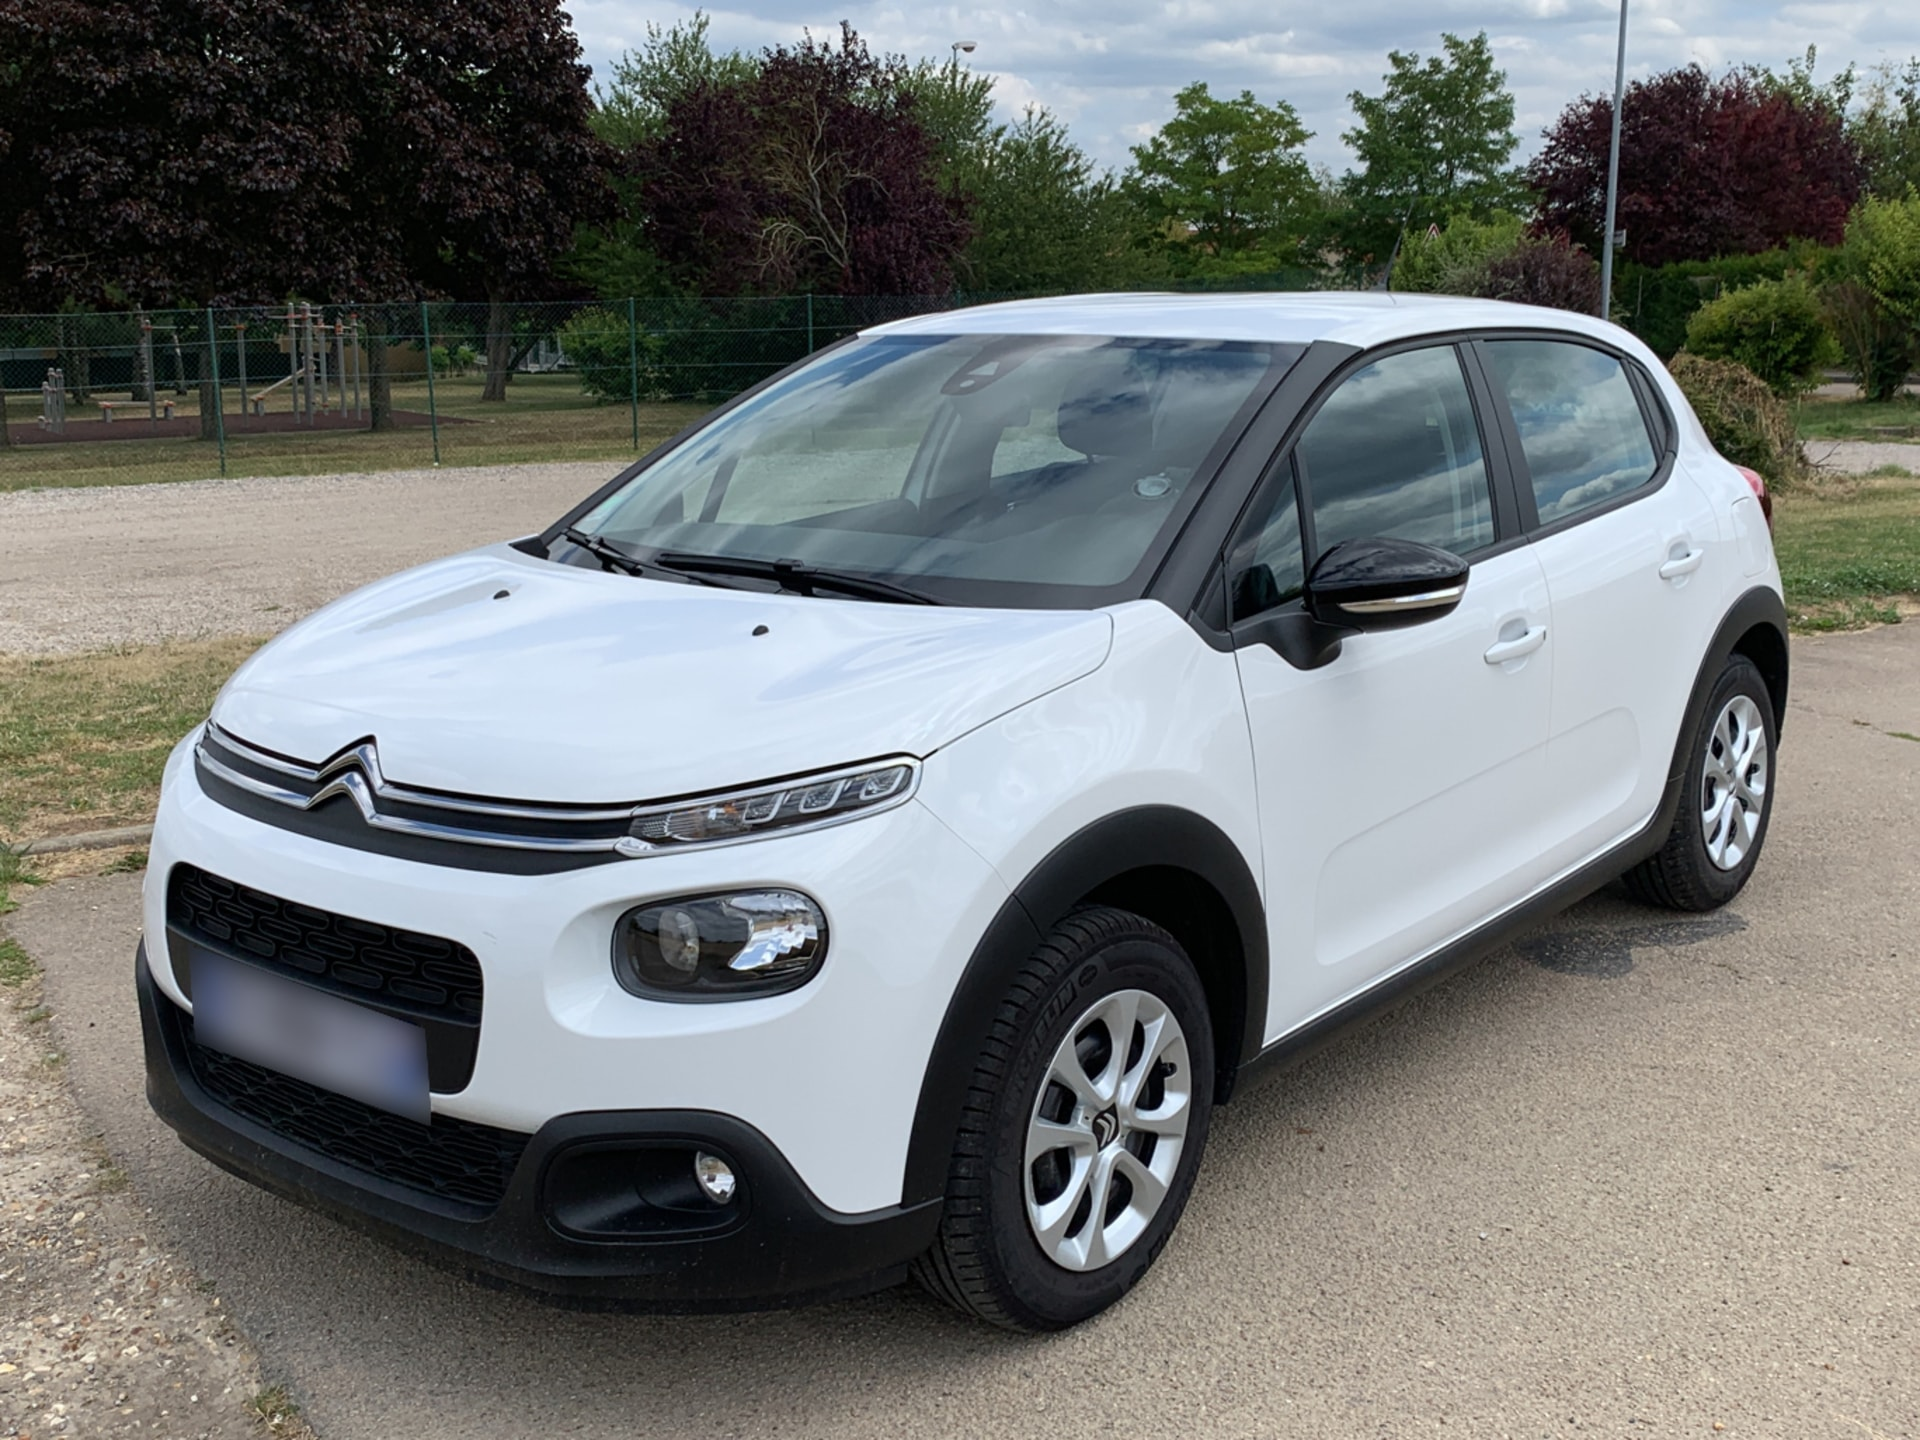 CITROEN C3 GENERATION-III 1.2 PURETECH 80 FEEL - Carventura